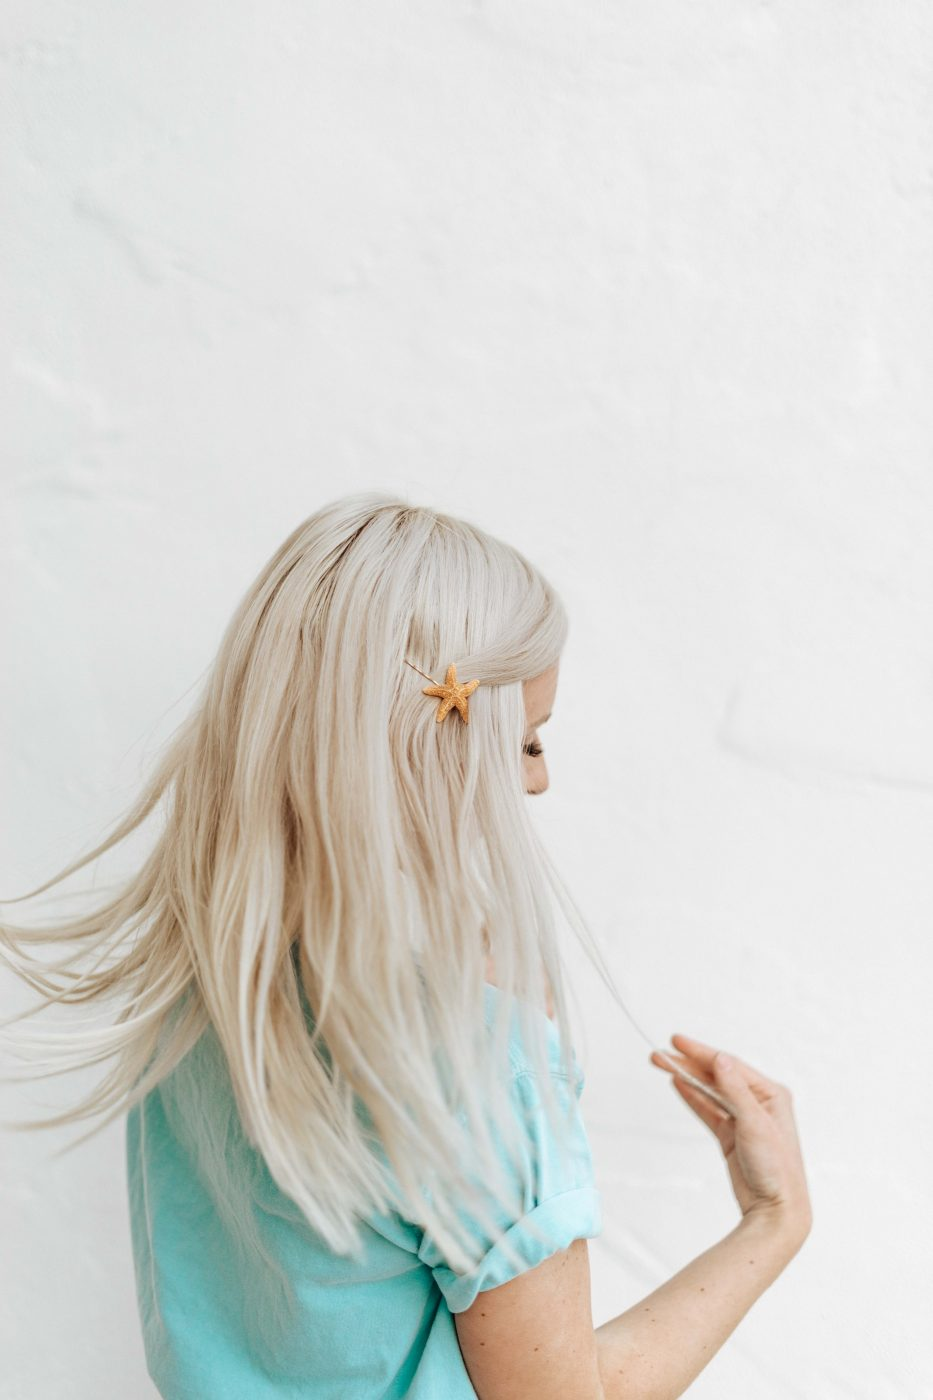 DIY Starfish Hair Pin - Hair Accessories - Sweet Teal by Jenny Bess